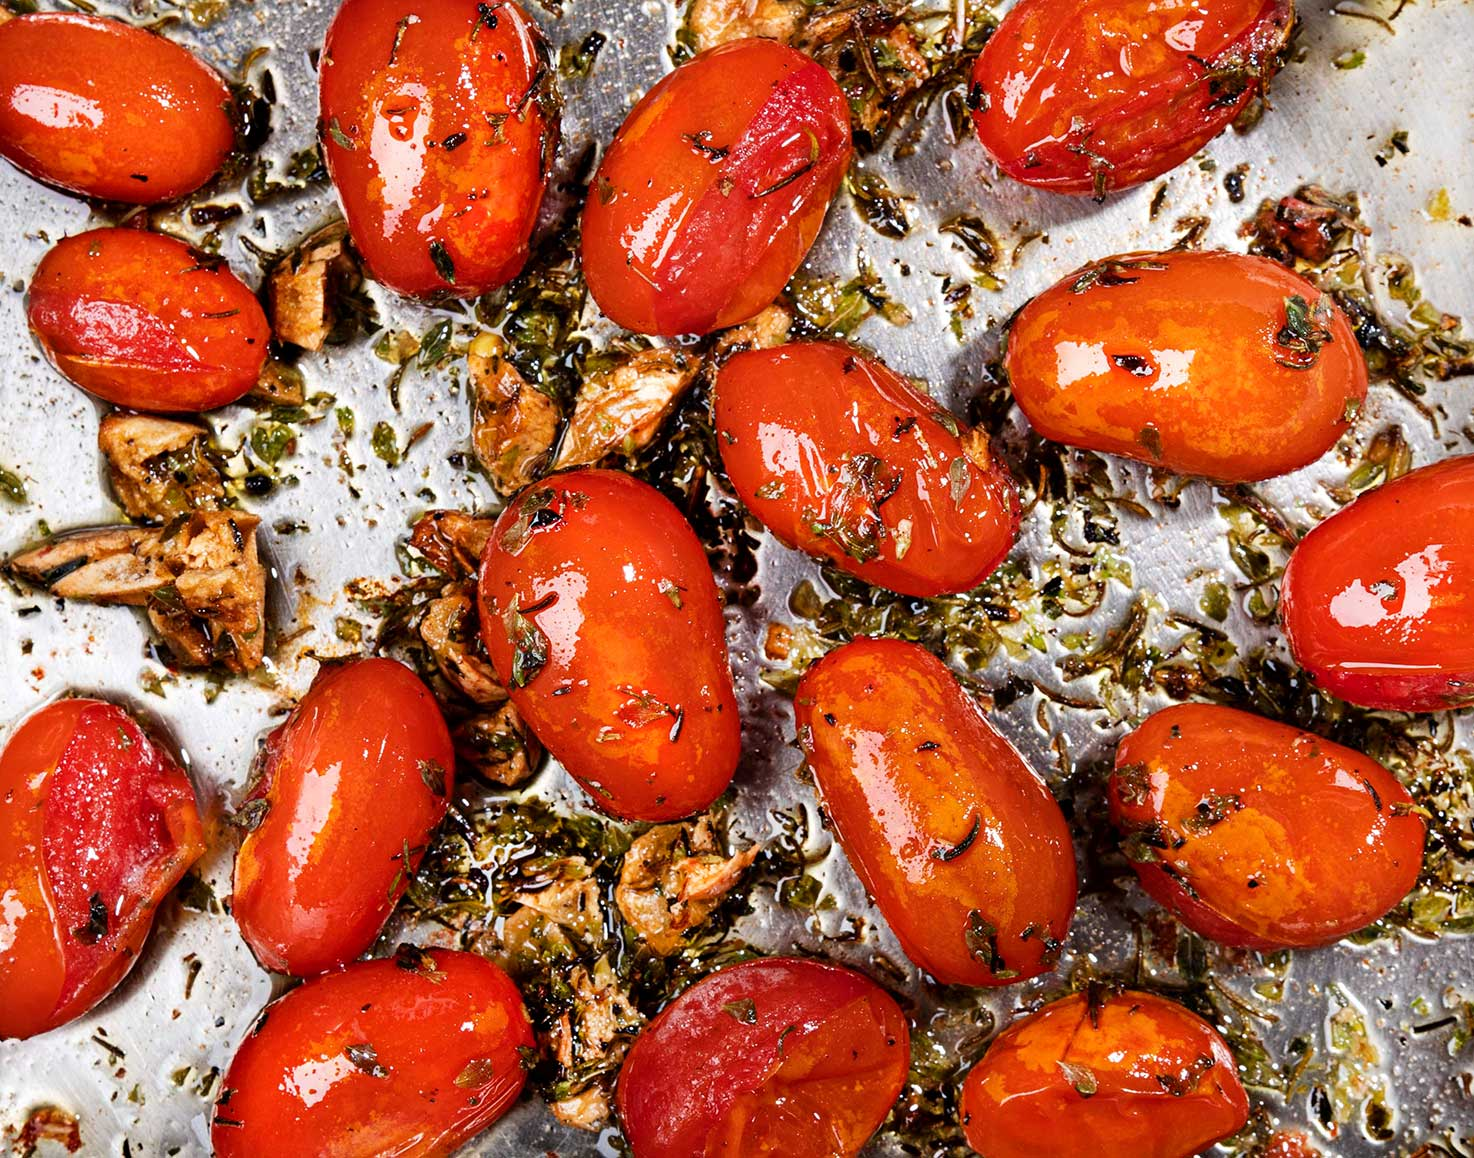 Cherry tomatoes are cooking in the pot with olive oil, smashed garlic clove and spices | Hurry The Food Up